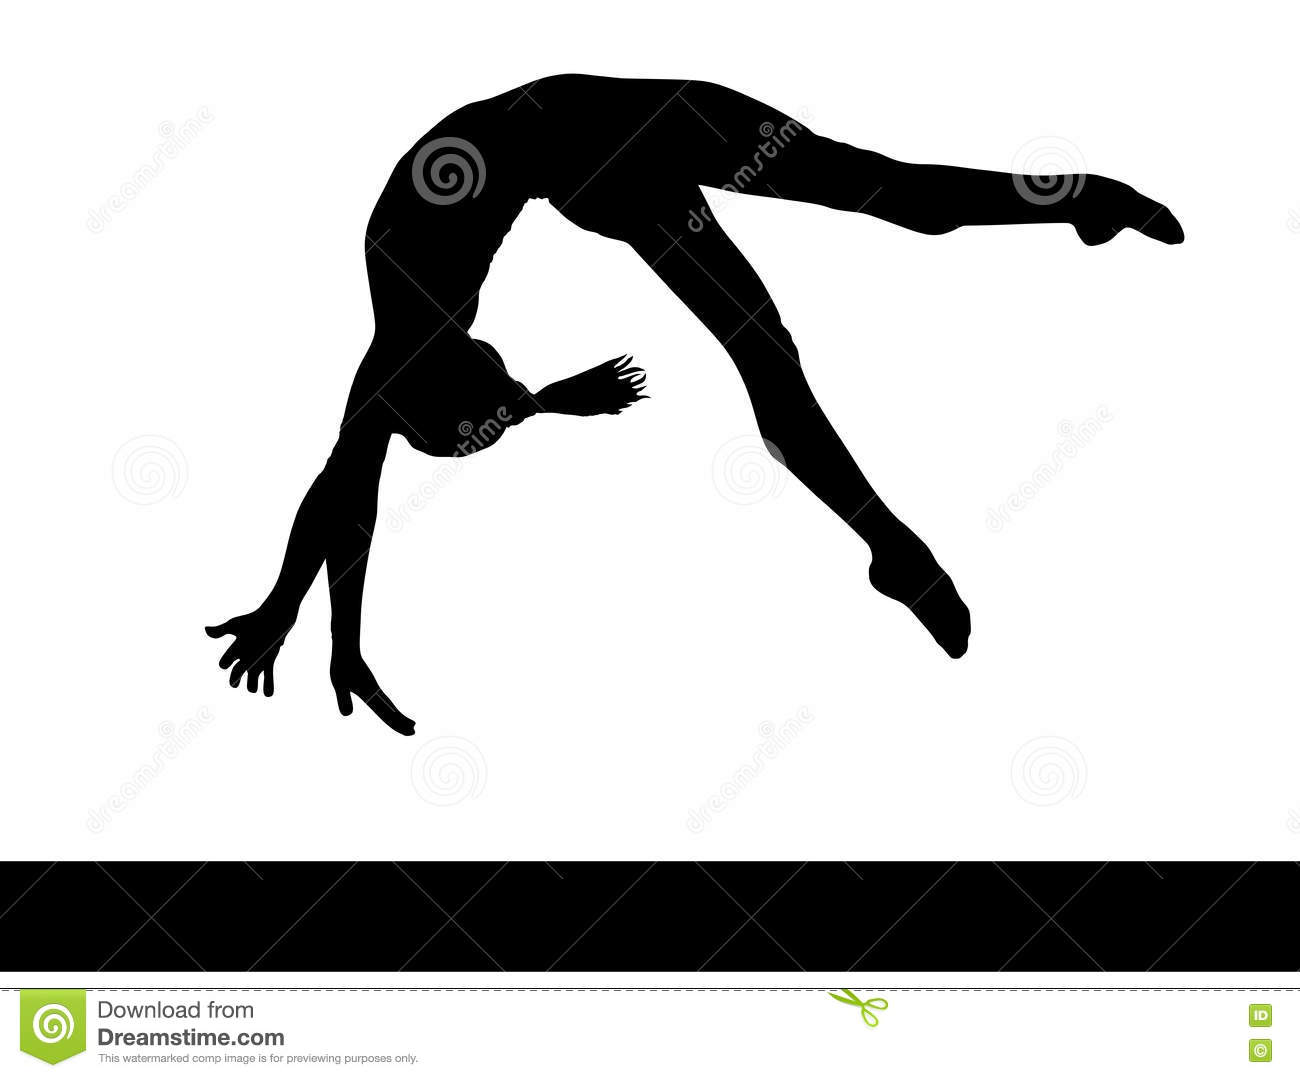 gymnast-silhouette-images-amp-amp